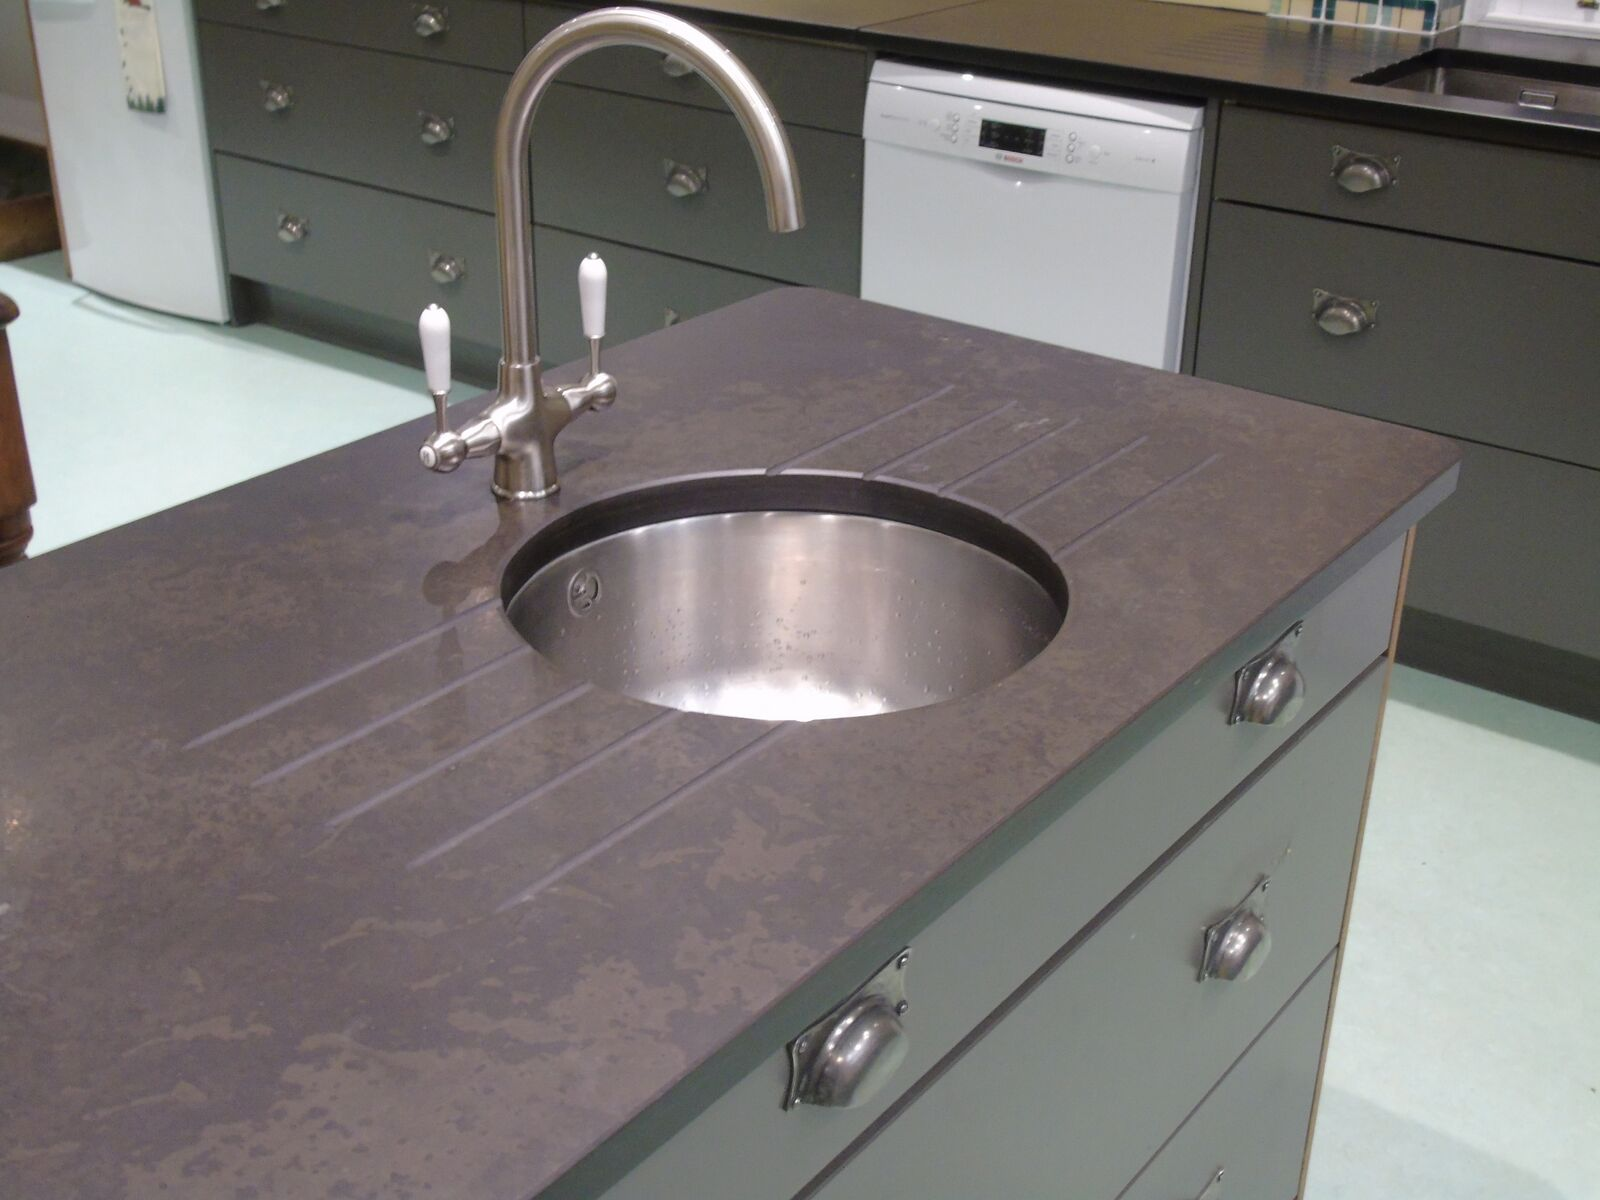 Caithness stone worktop and sink